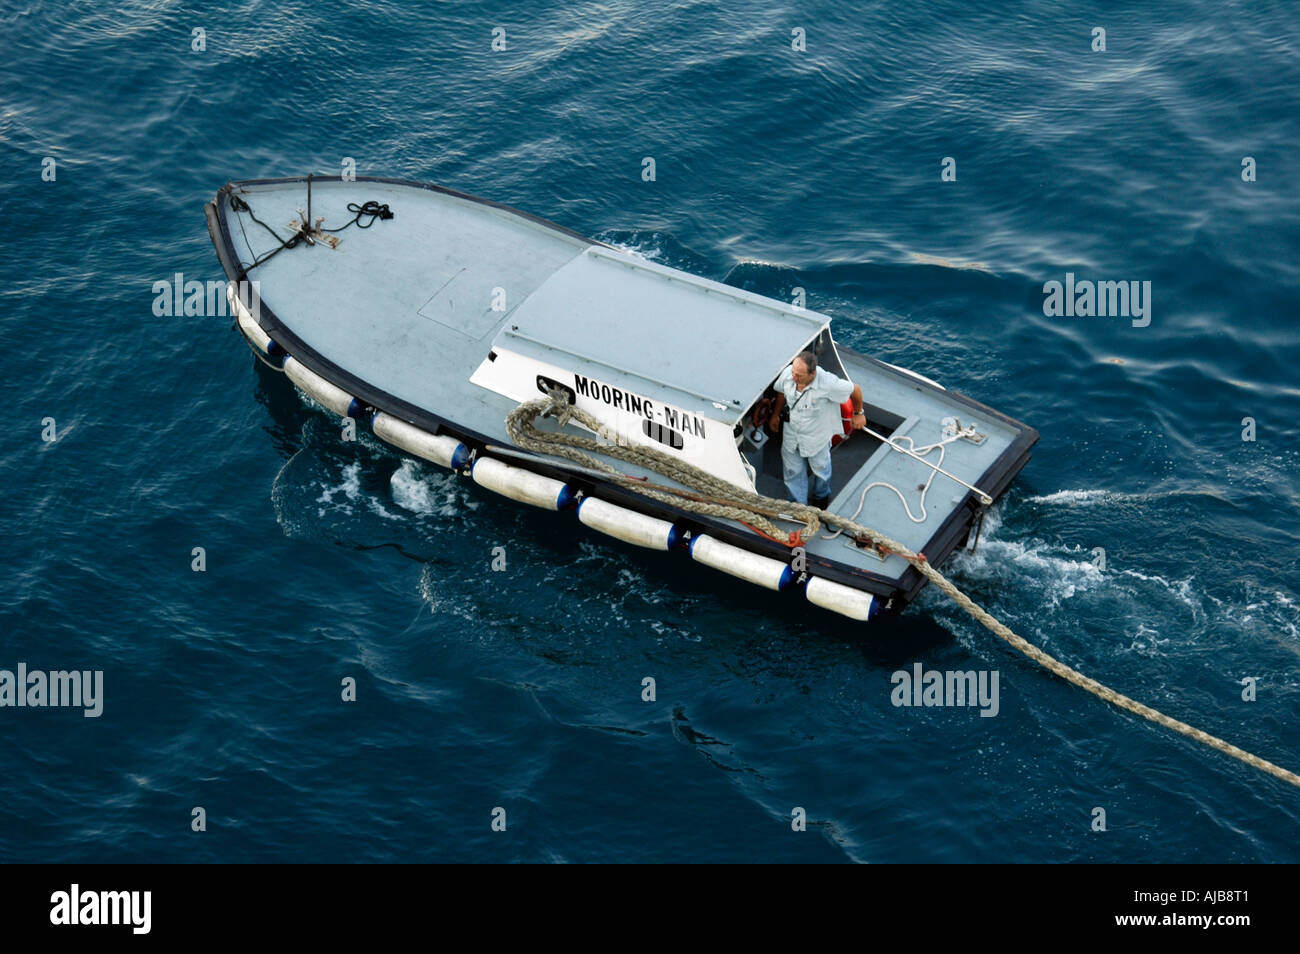 The mooring man boat takes he ropes from the docking vessel to be tied to the wharf port of Messina Sicily Italy July 2006 - Stock Image